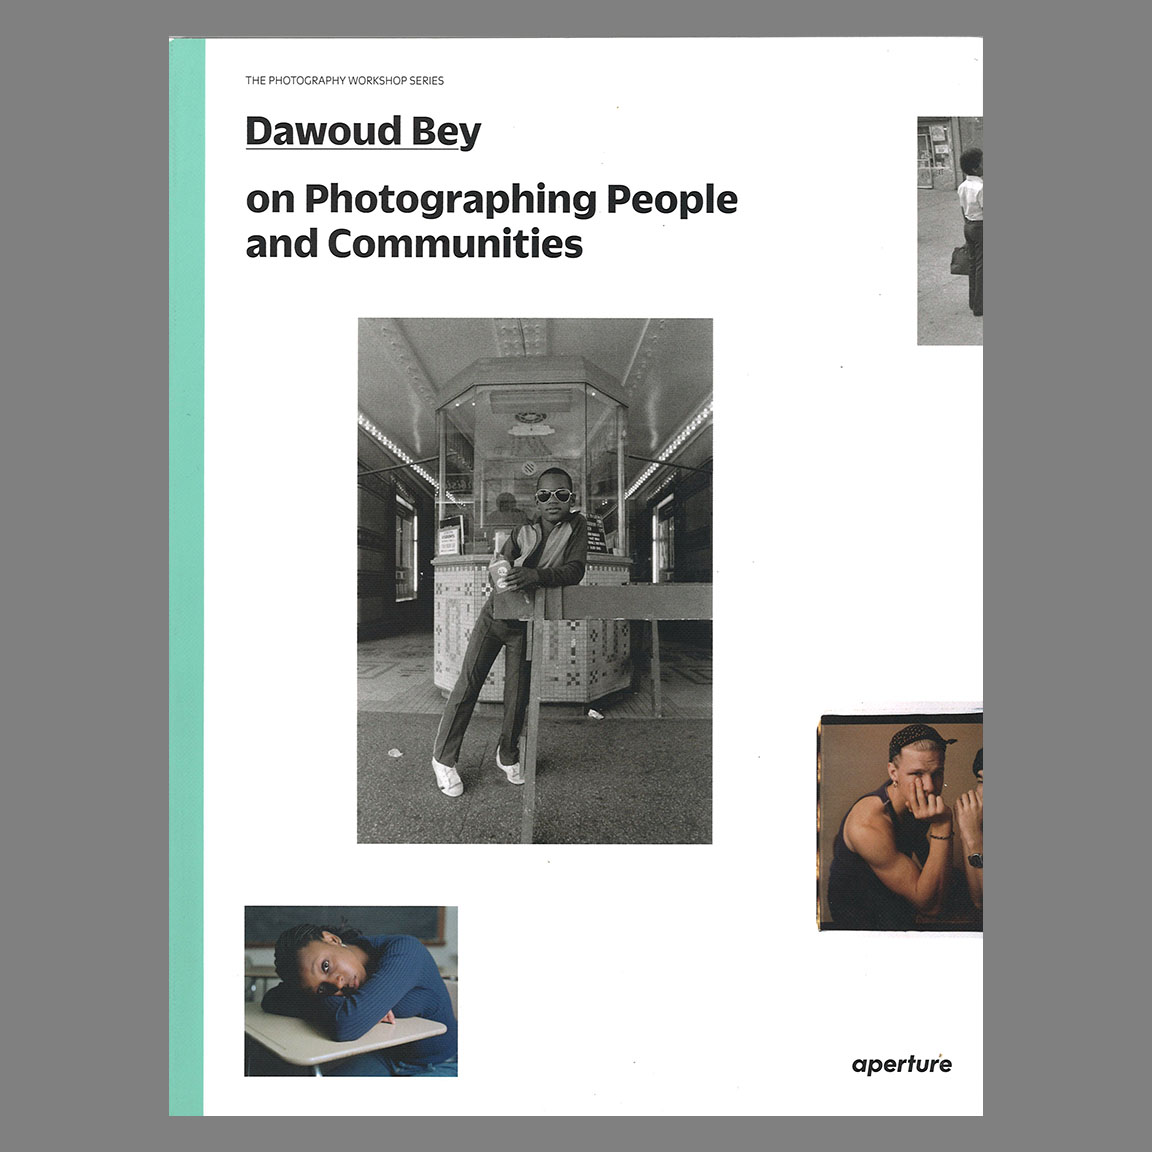 Dawoud Bey - on Photographing People and Communities